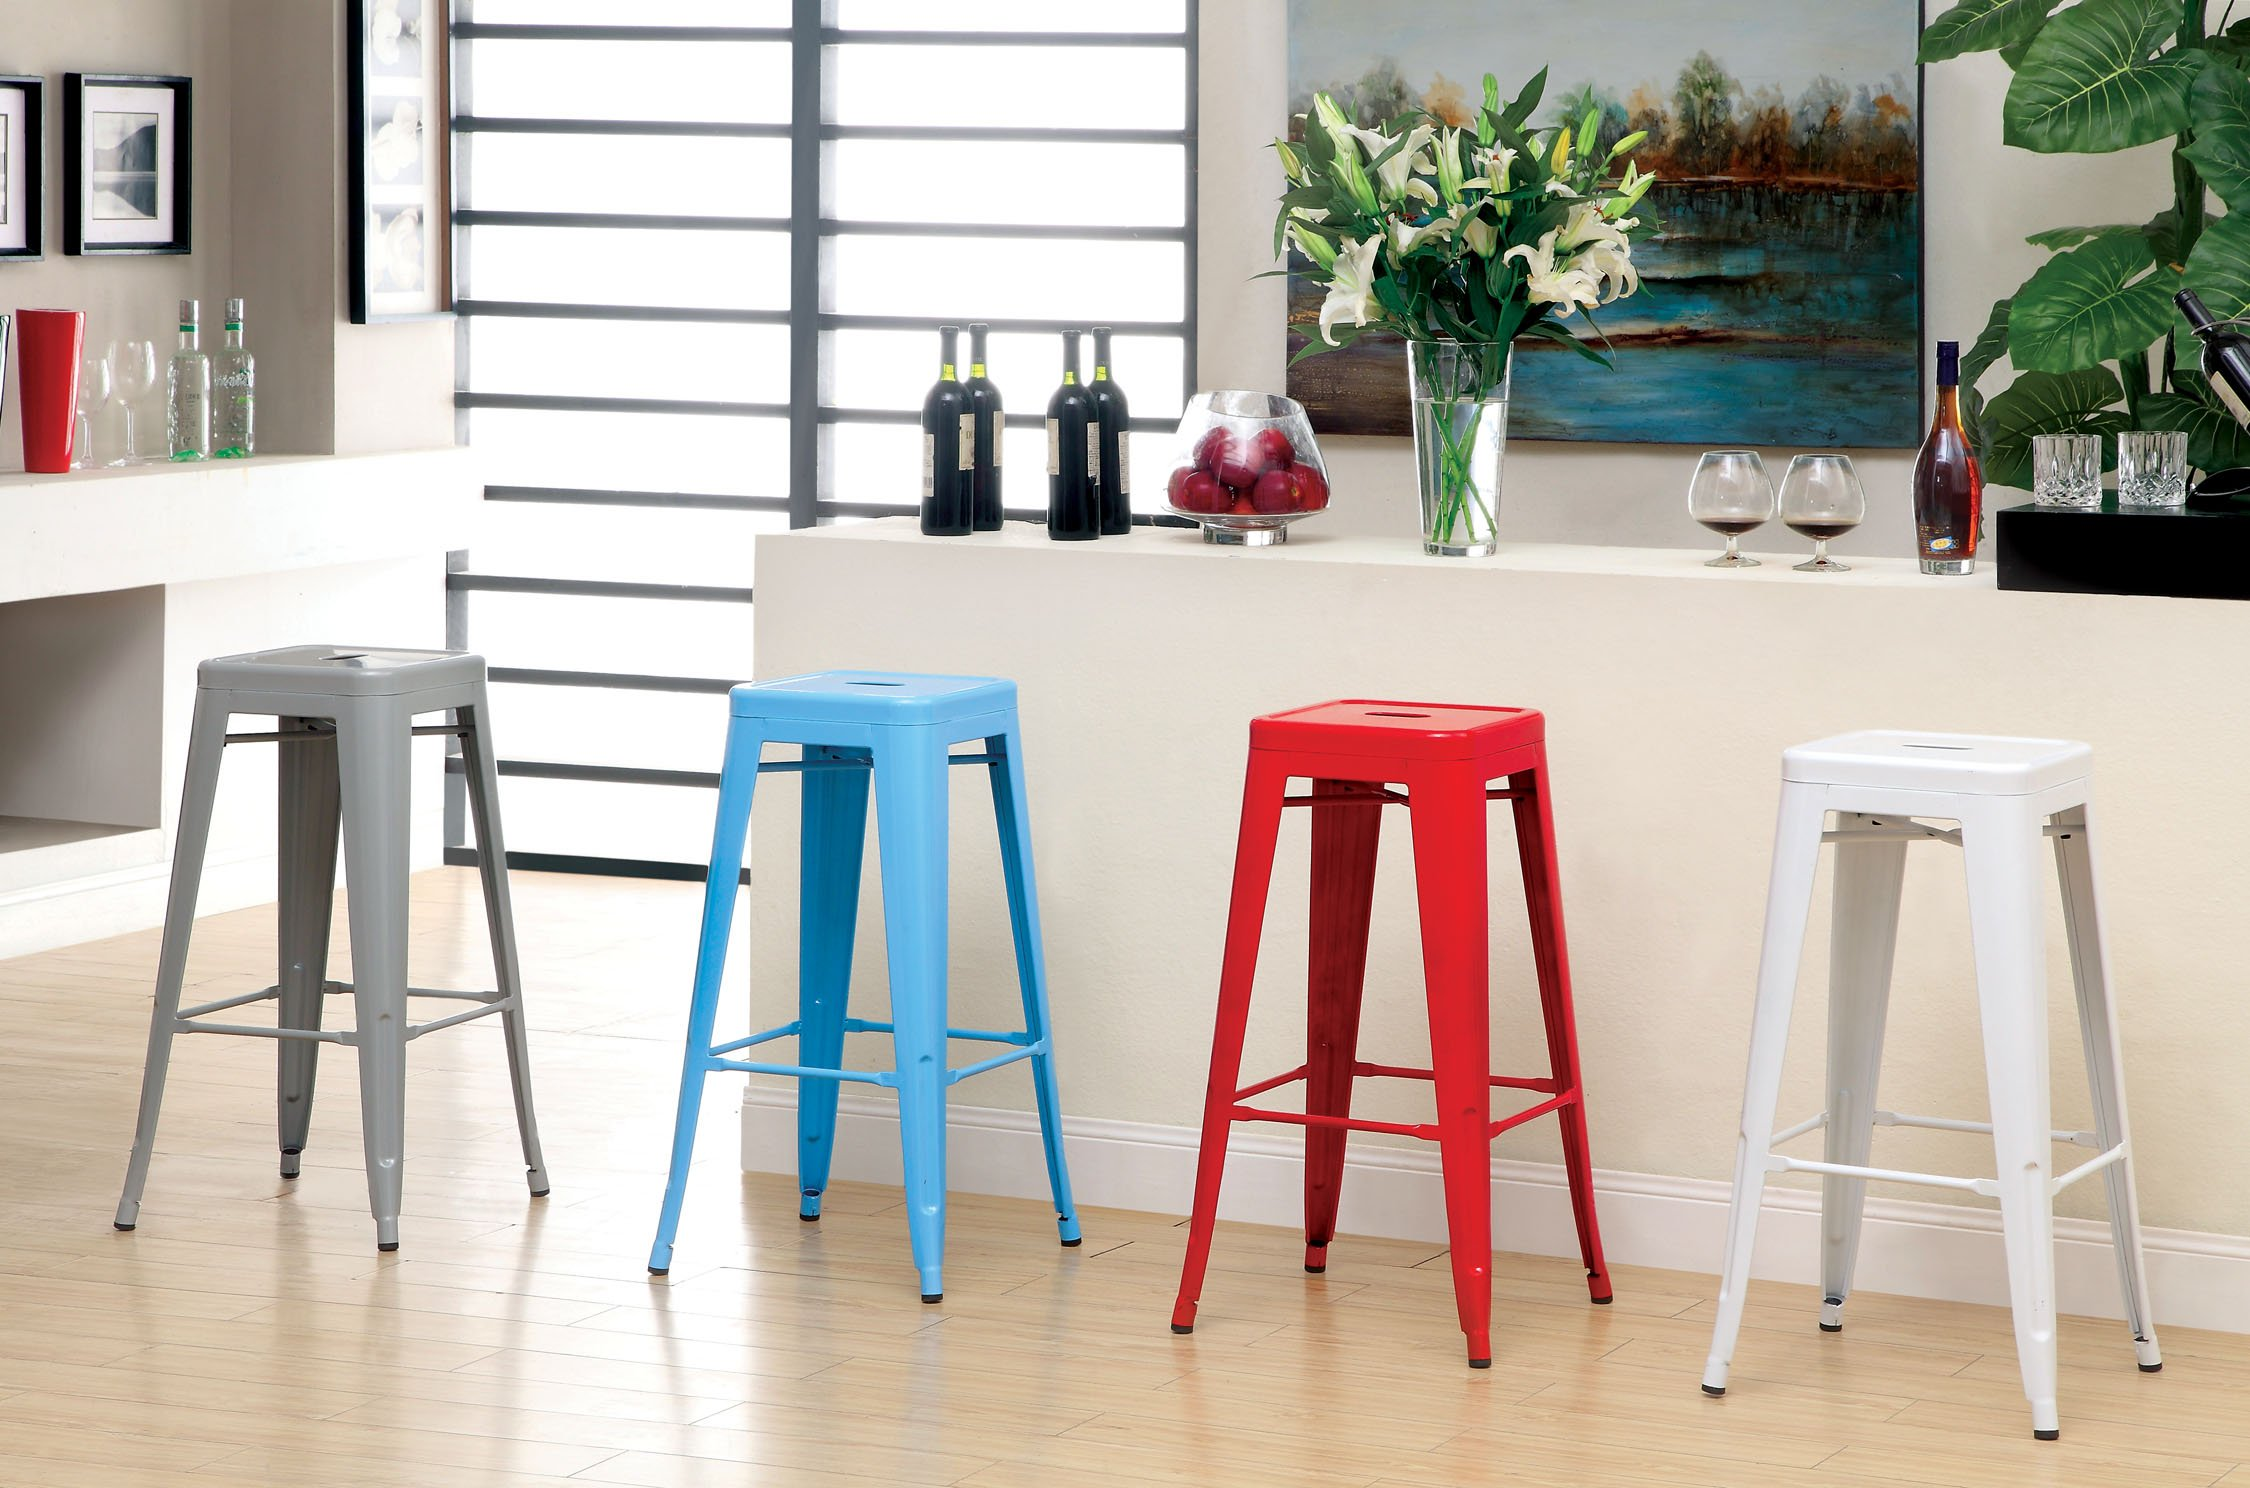 Furniture of America Karthe Modern Steel Stool, Blue, Set of 2 by Furniture of America